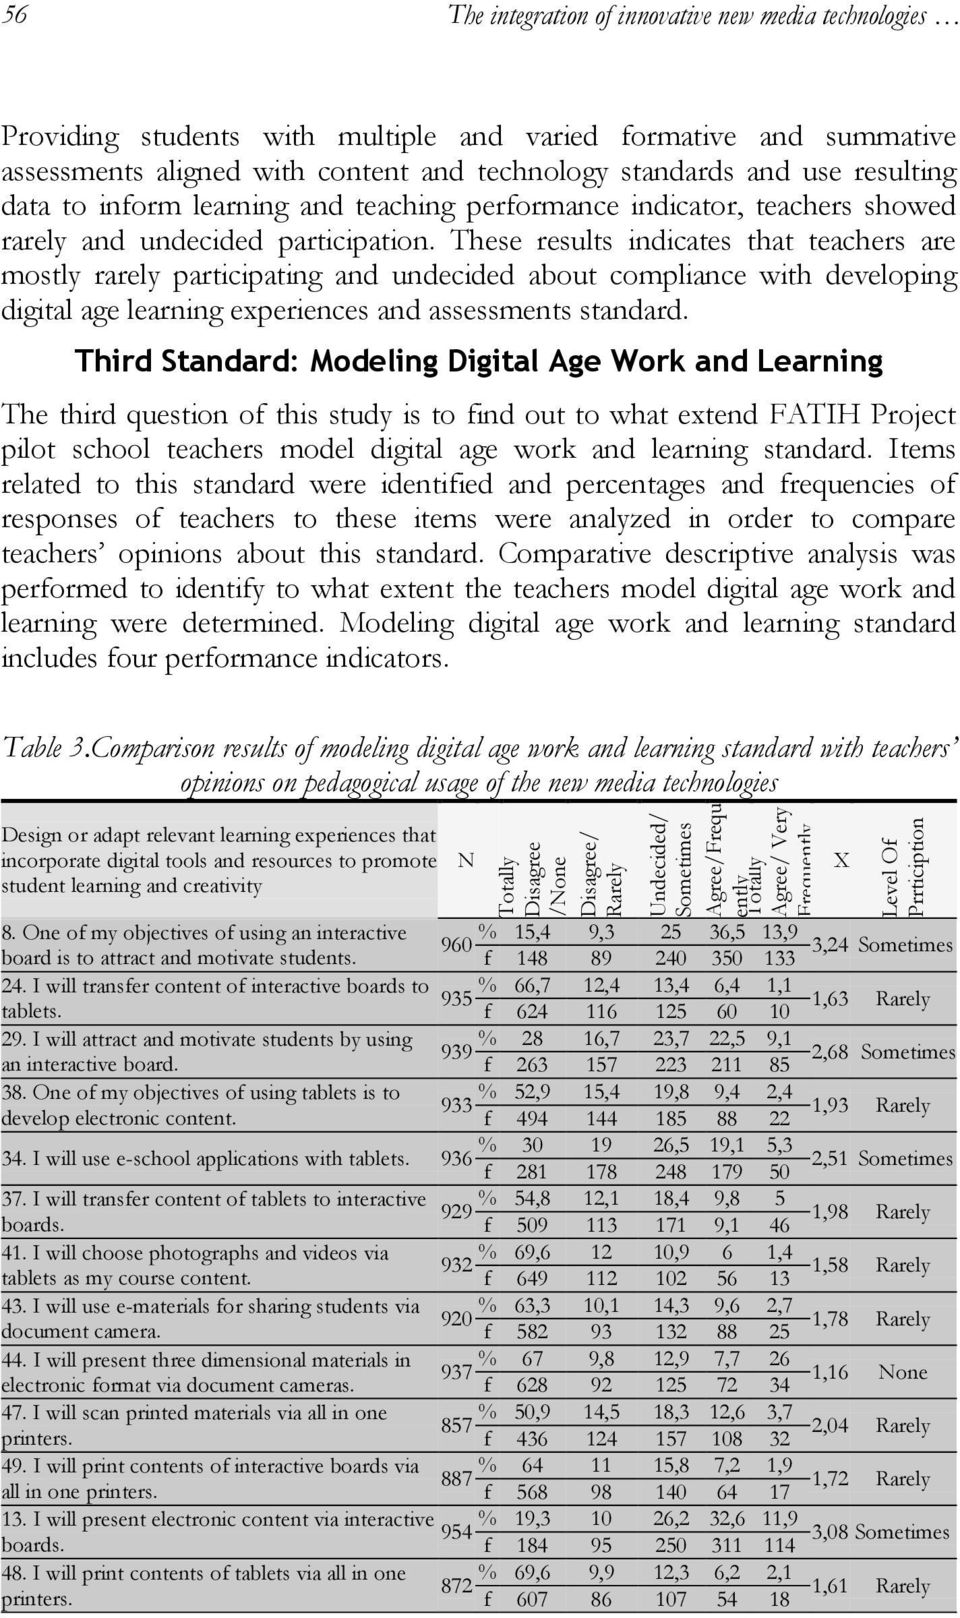 These results indicates that teachers are mostly rarely participating and undecided about compliance with developing digital age learning experiences and assessments standard.